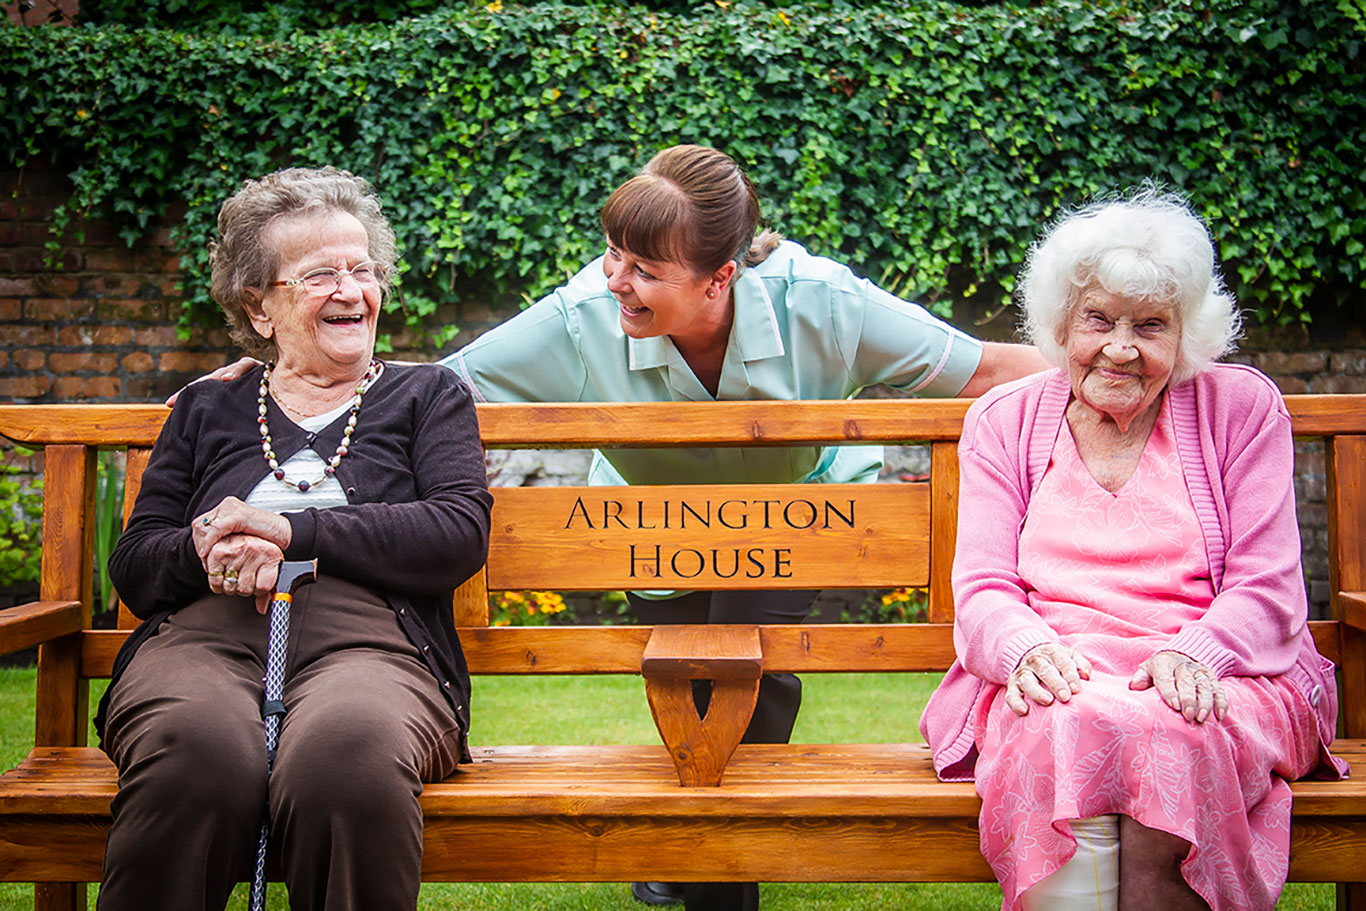 Sitting and having a chat at Arlington House Care Home